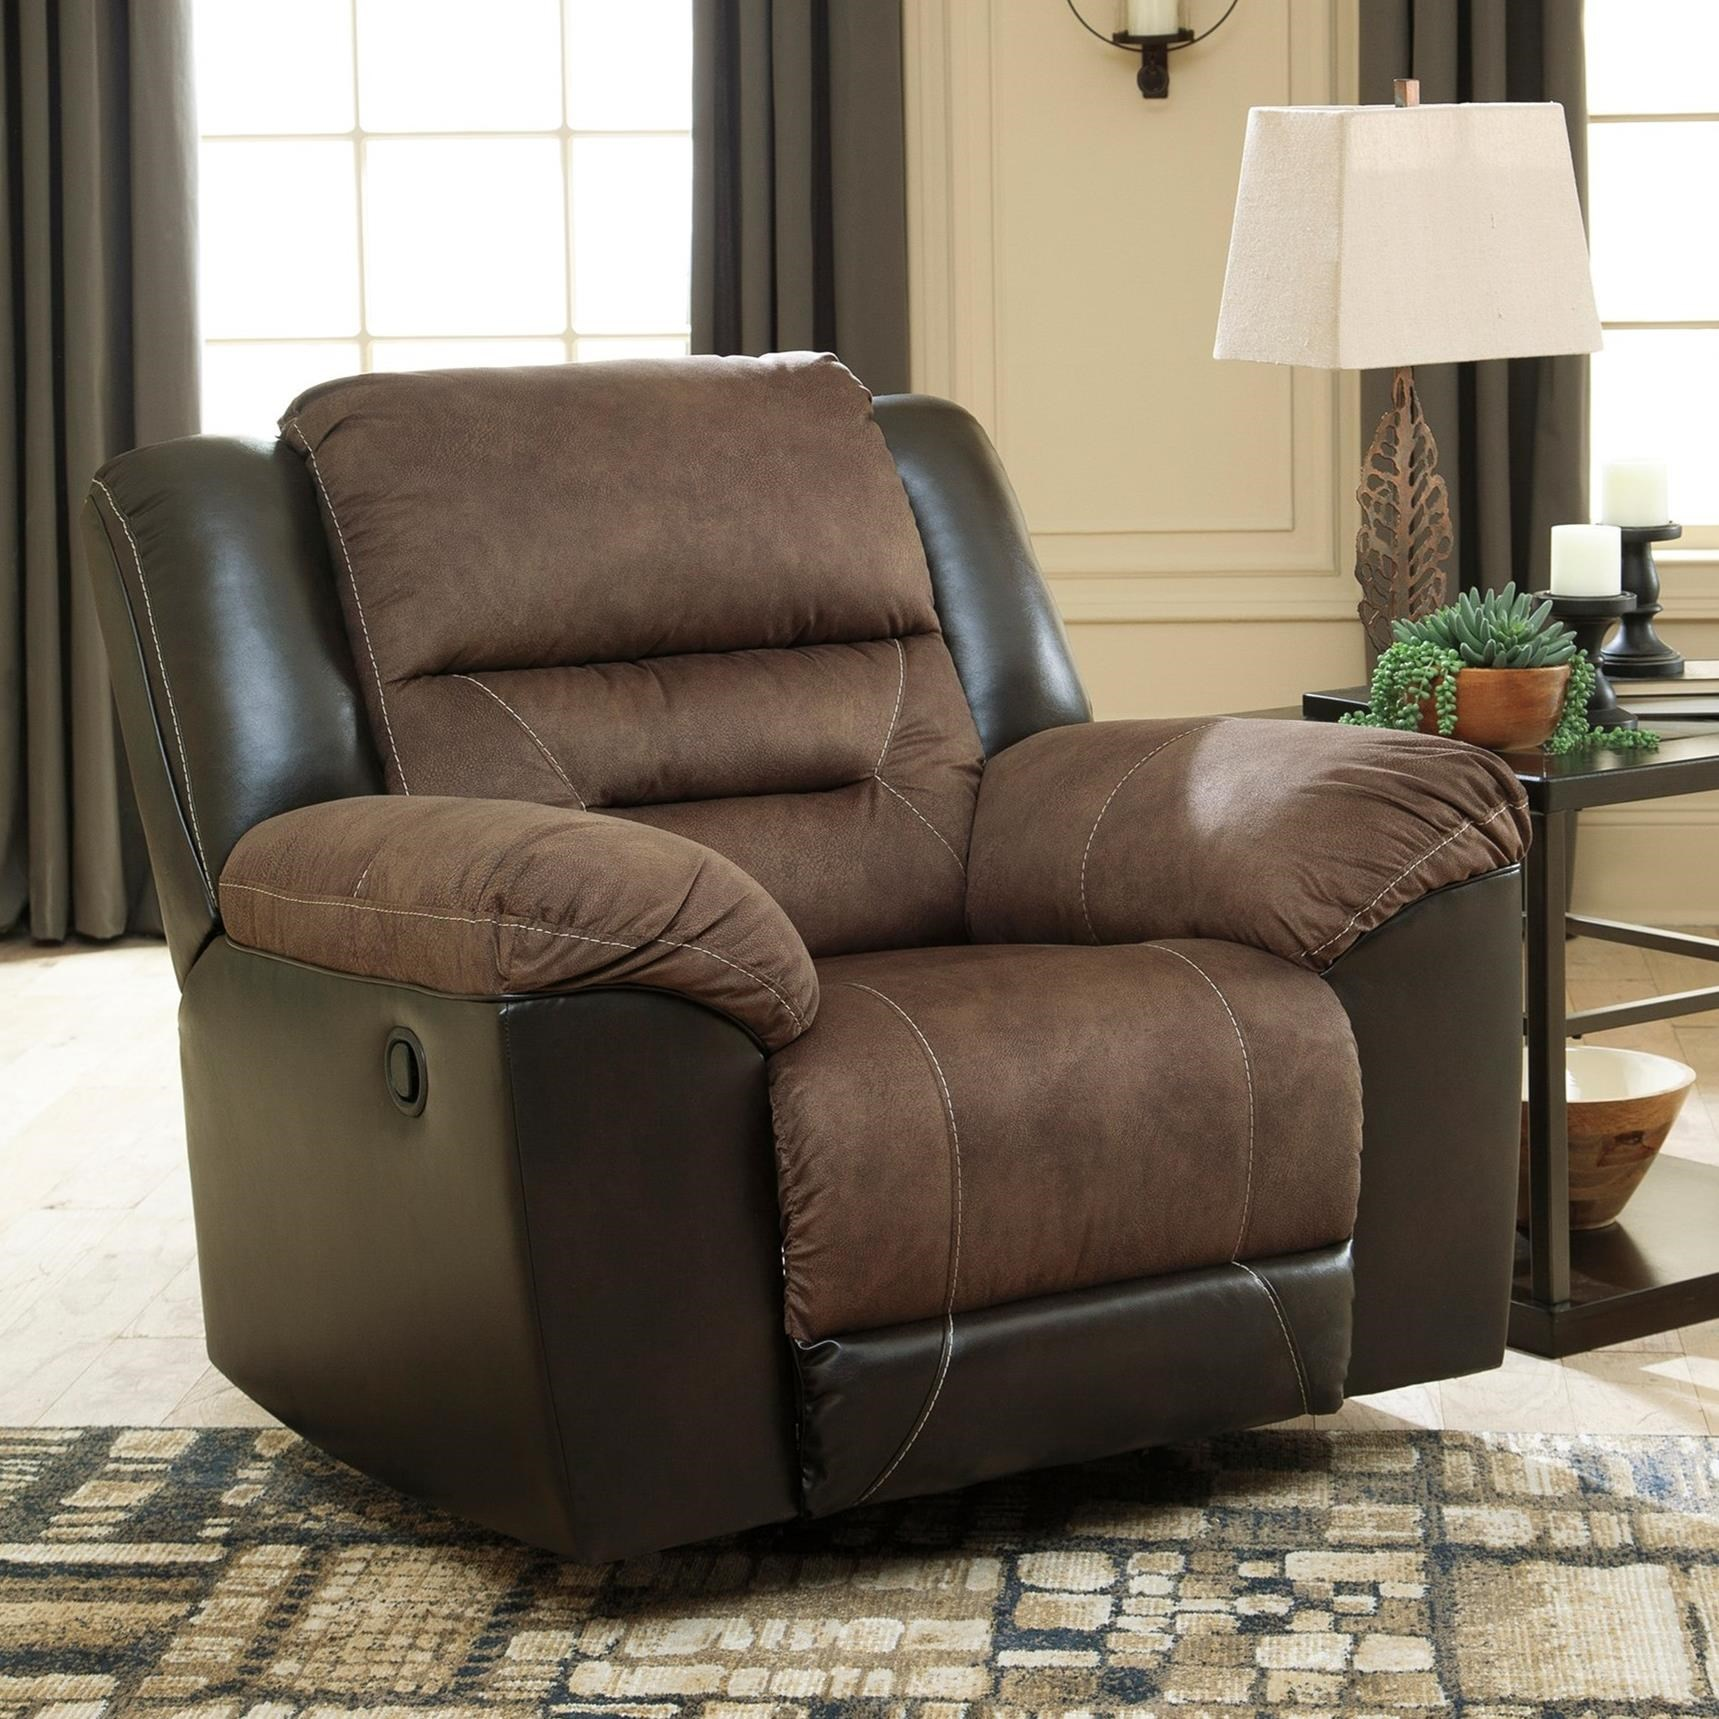 Recliner Pillow Earhart Casual Rocker Recliner With Pillow Arms By Ashley Signature Design At Rooms And Rest